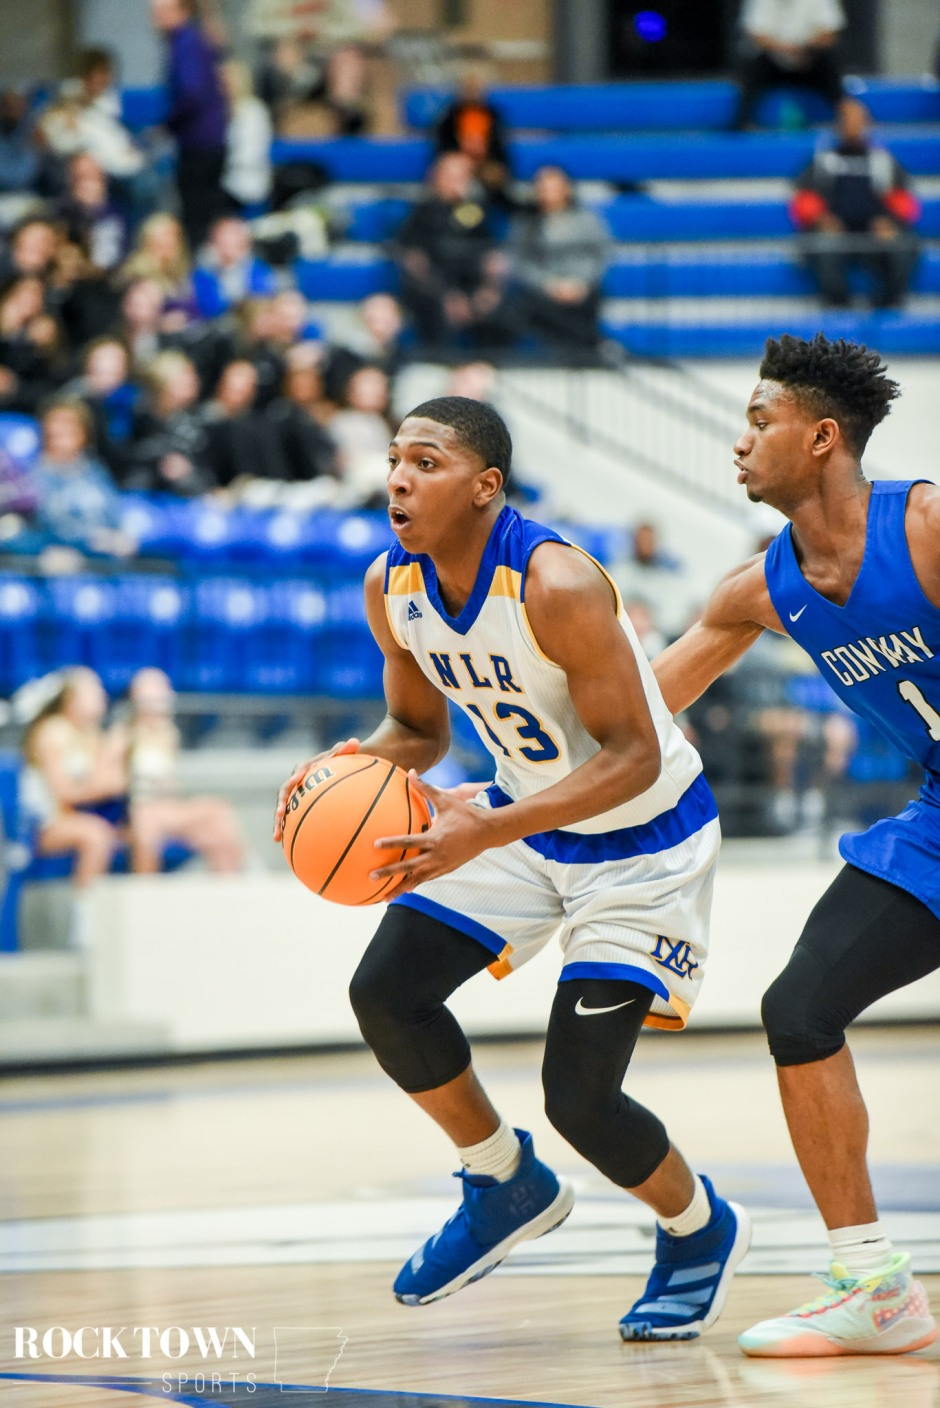 NLR_conway_bball_2020(i)-37